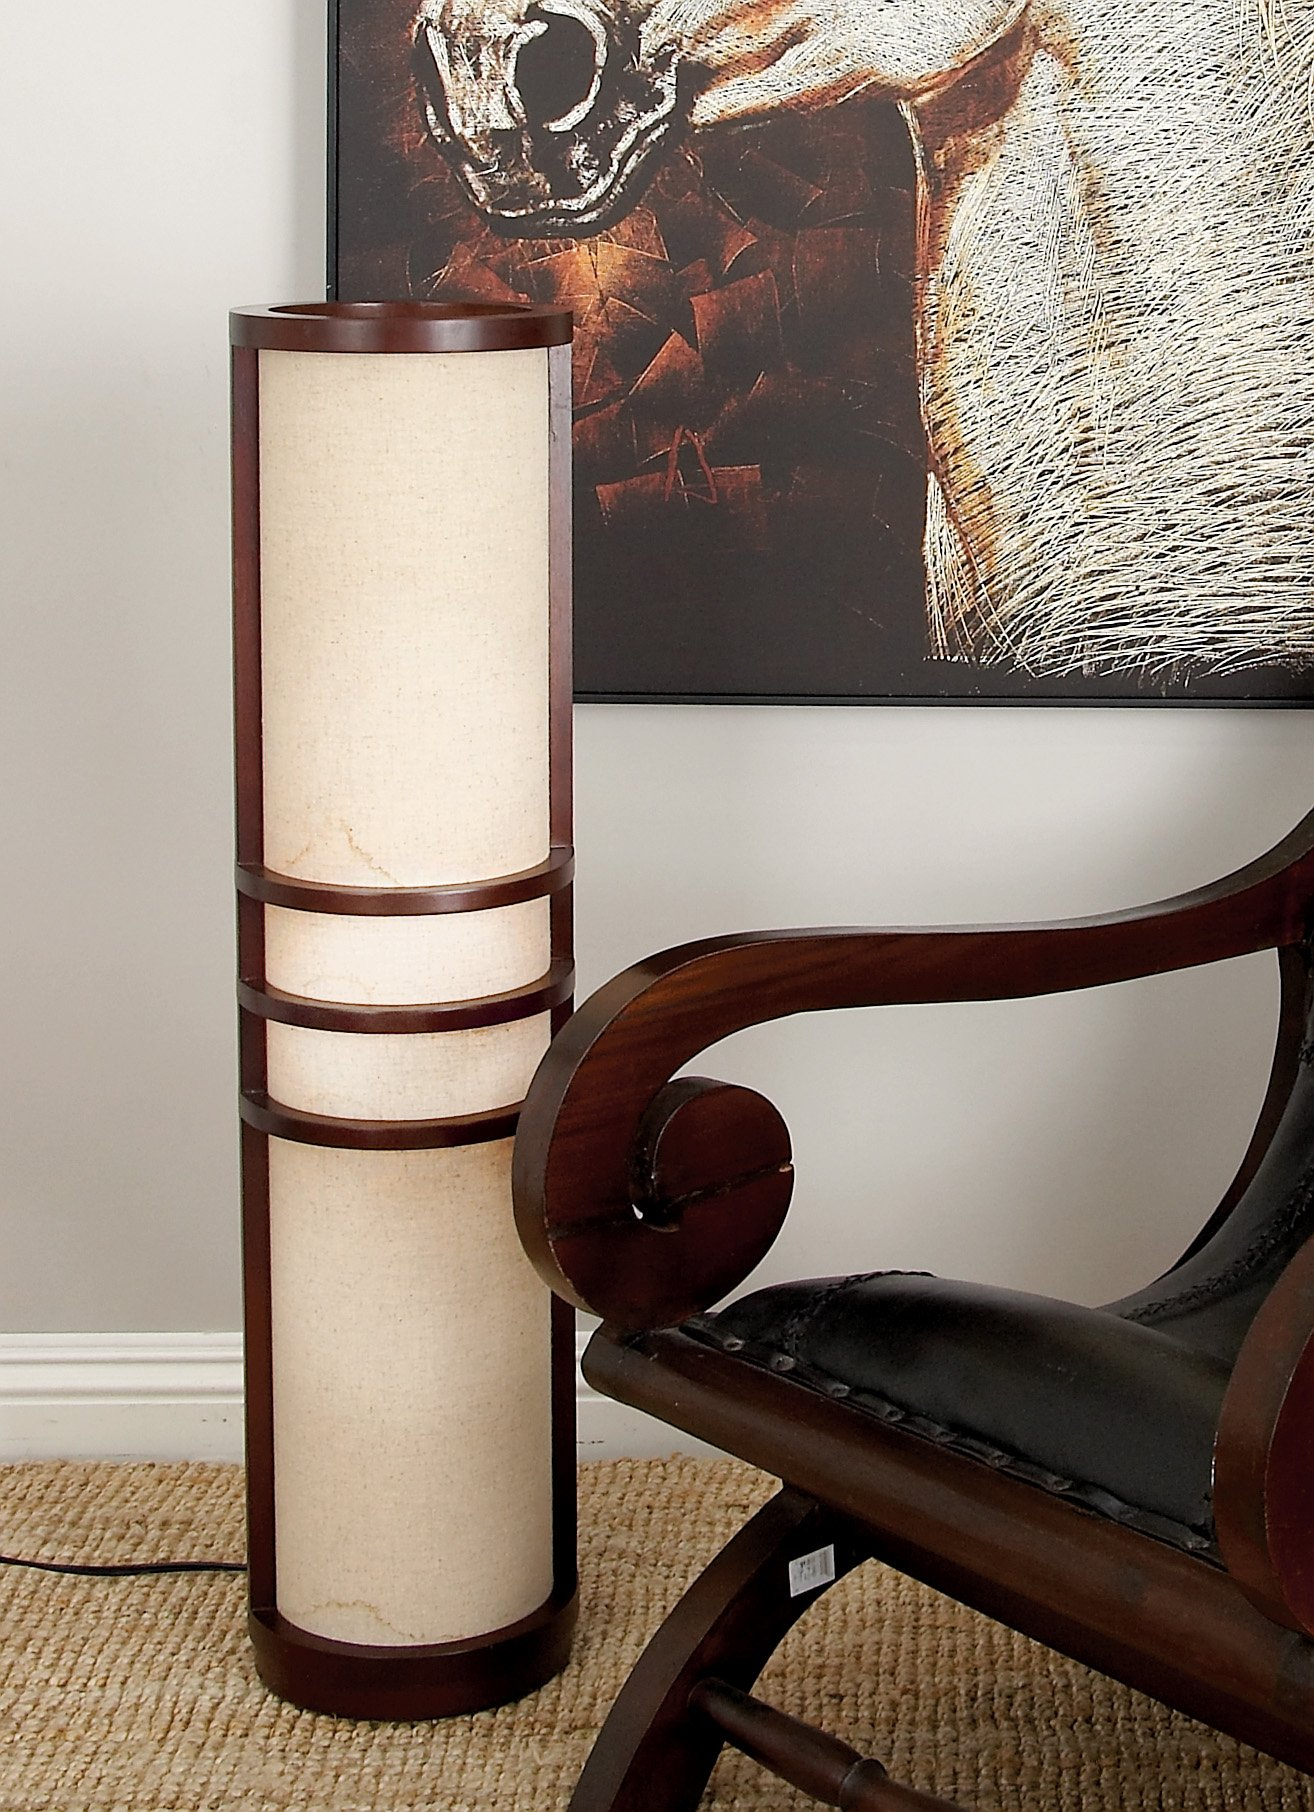 Deco 79 Wood Floor Lamp Made of Brown Wood by Deco 79 (Image #3)